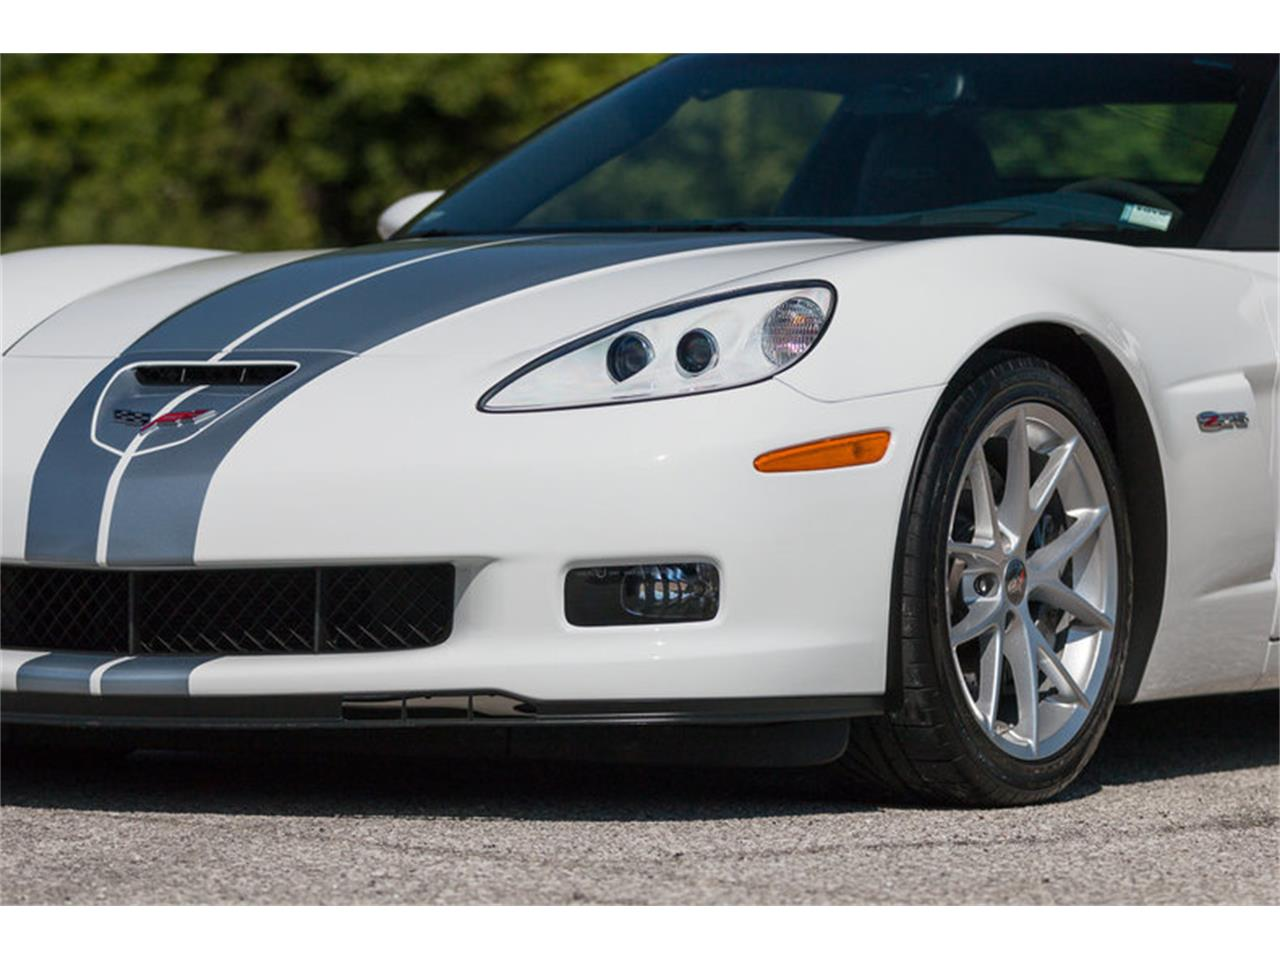 Large Picture of '13 Chevrolet Corvette Z06 located in Missouri Offered by Fast Lane Classic Cars Inc. - LAO0